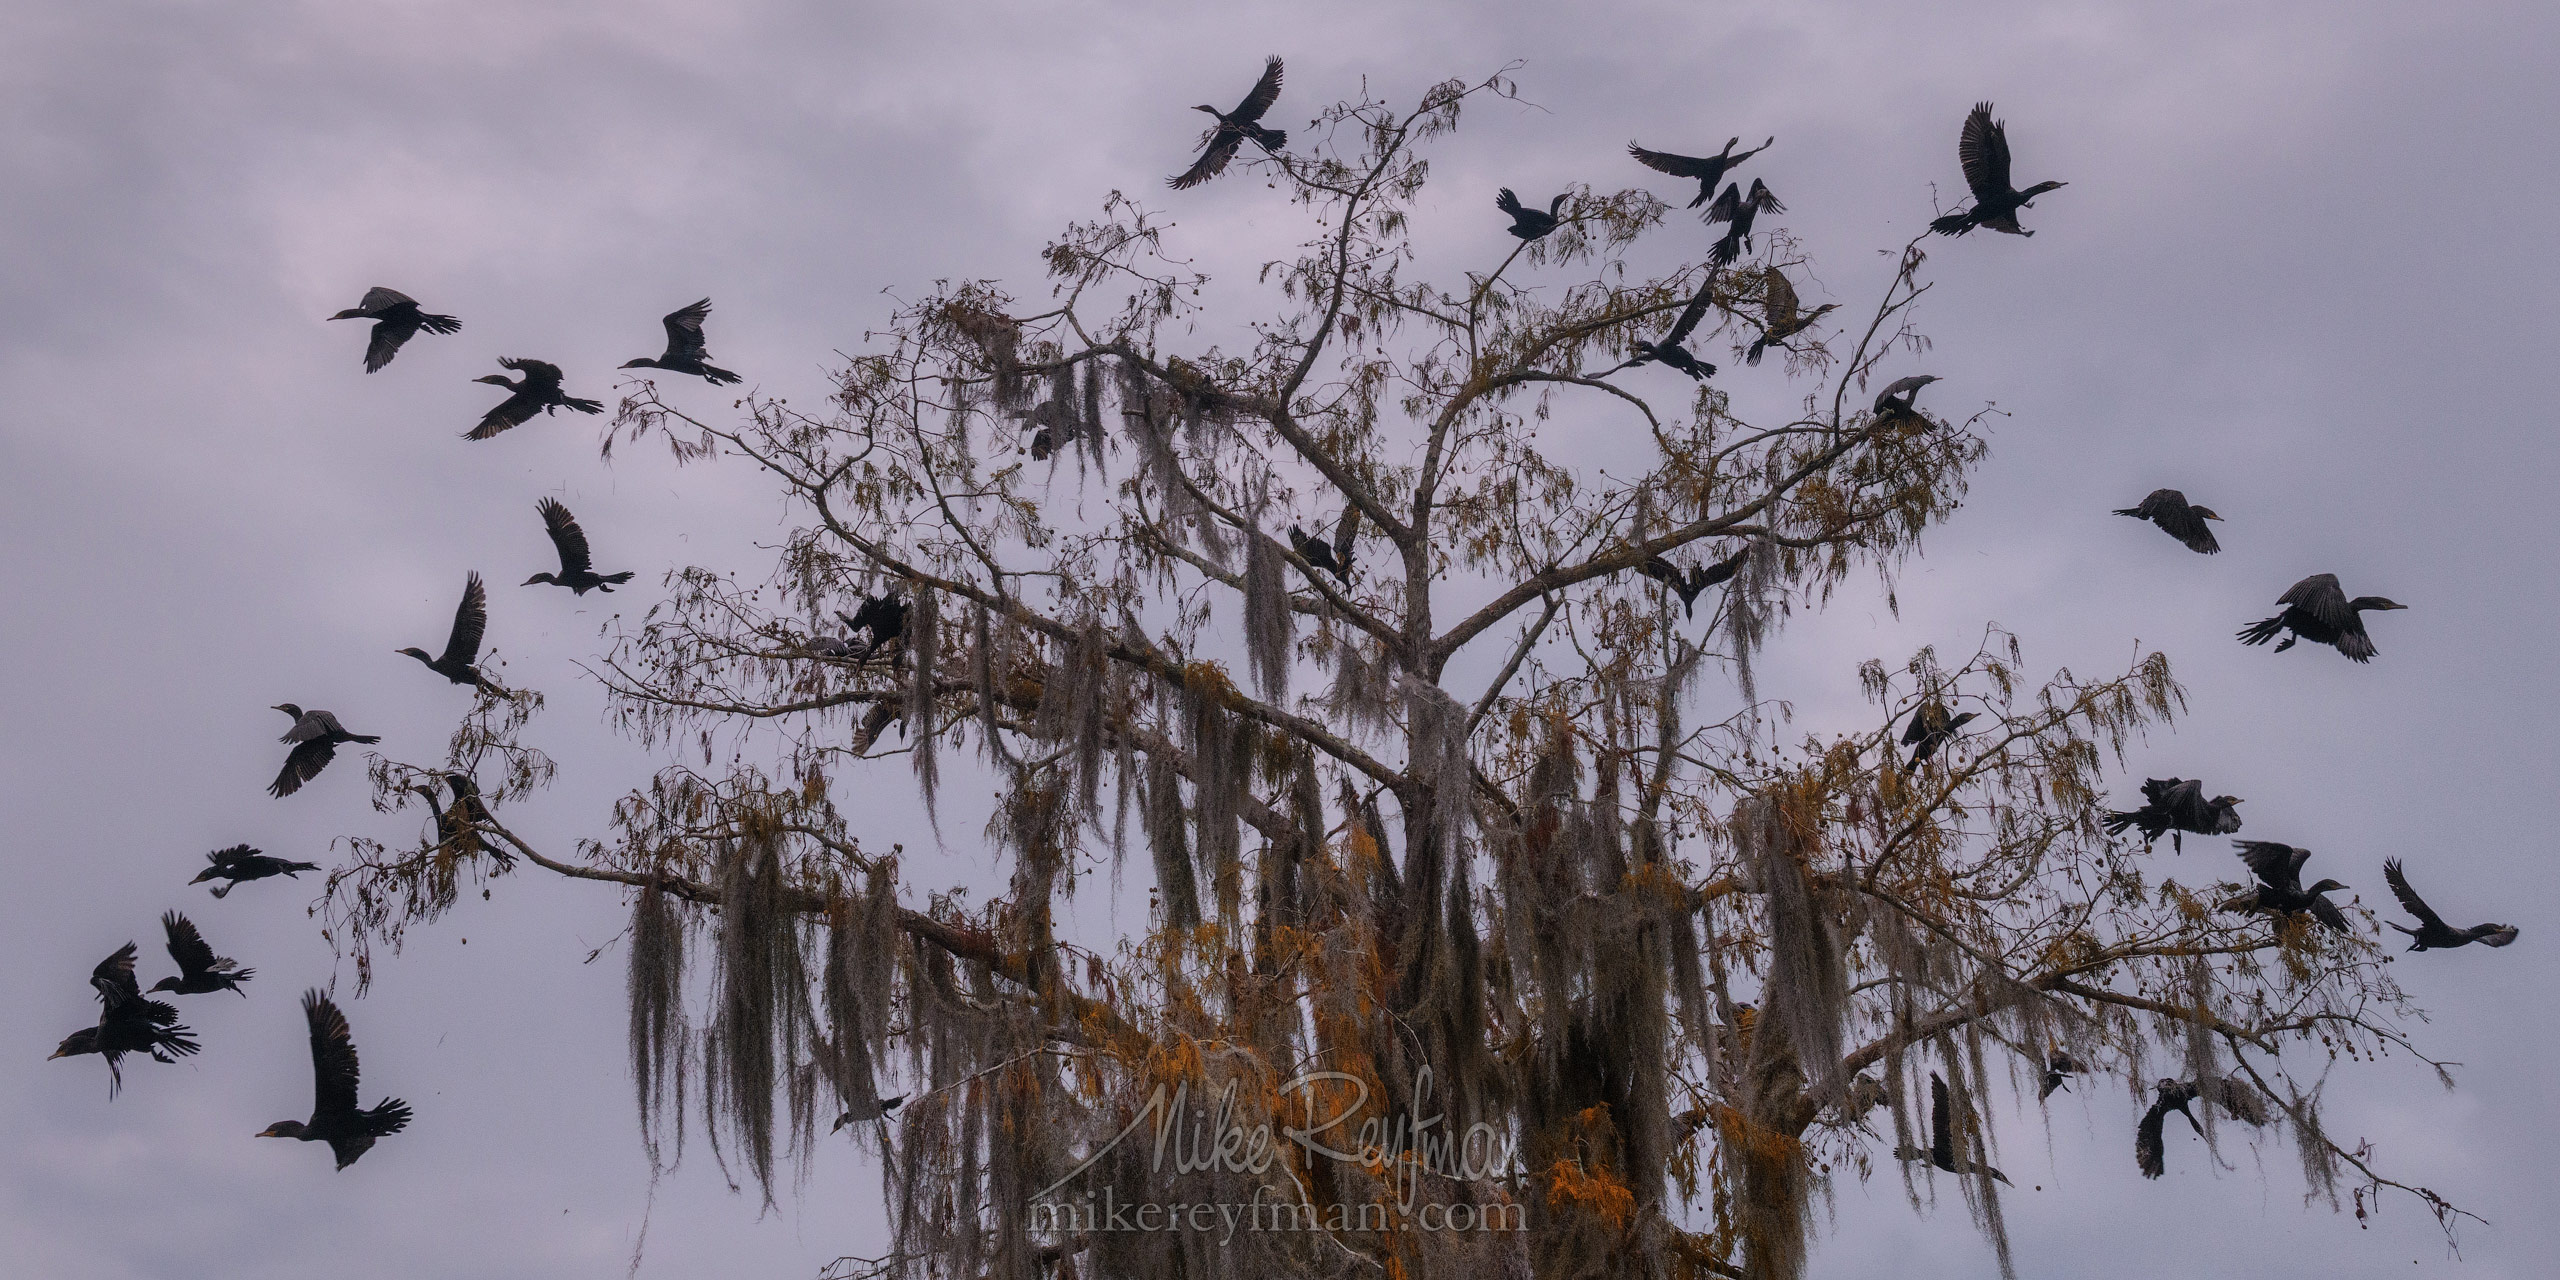 The Exploding Tree. A flock of Double-crested Cormorants taking off from a Bald Cypress tree. Lake Martin, Louisiana, US 019-LT1-50A2684_Pano-2x1.jpg - Bold Cypress and Tupelo Trees in the swamps of Atchafalaya River Basin. Caddo, Martin and Fousse Lakes. Texas/Louisiana, USA. - Mike Reyfman Photography